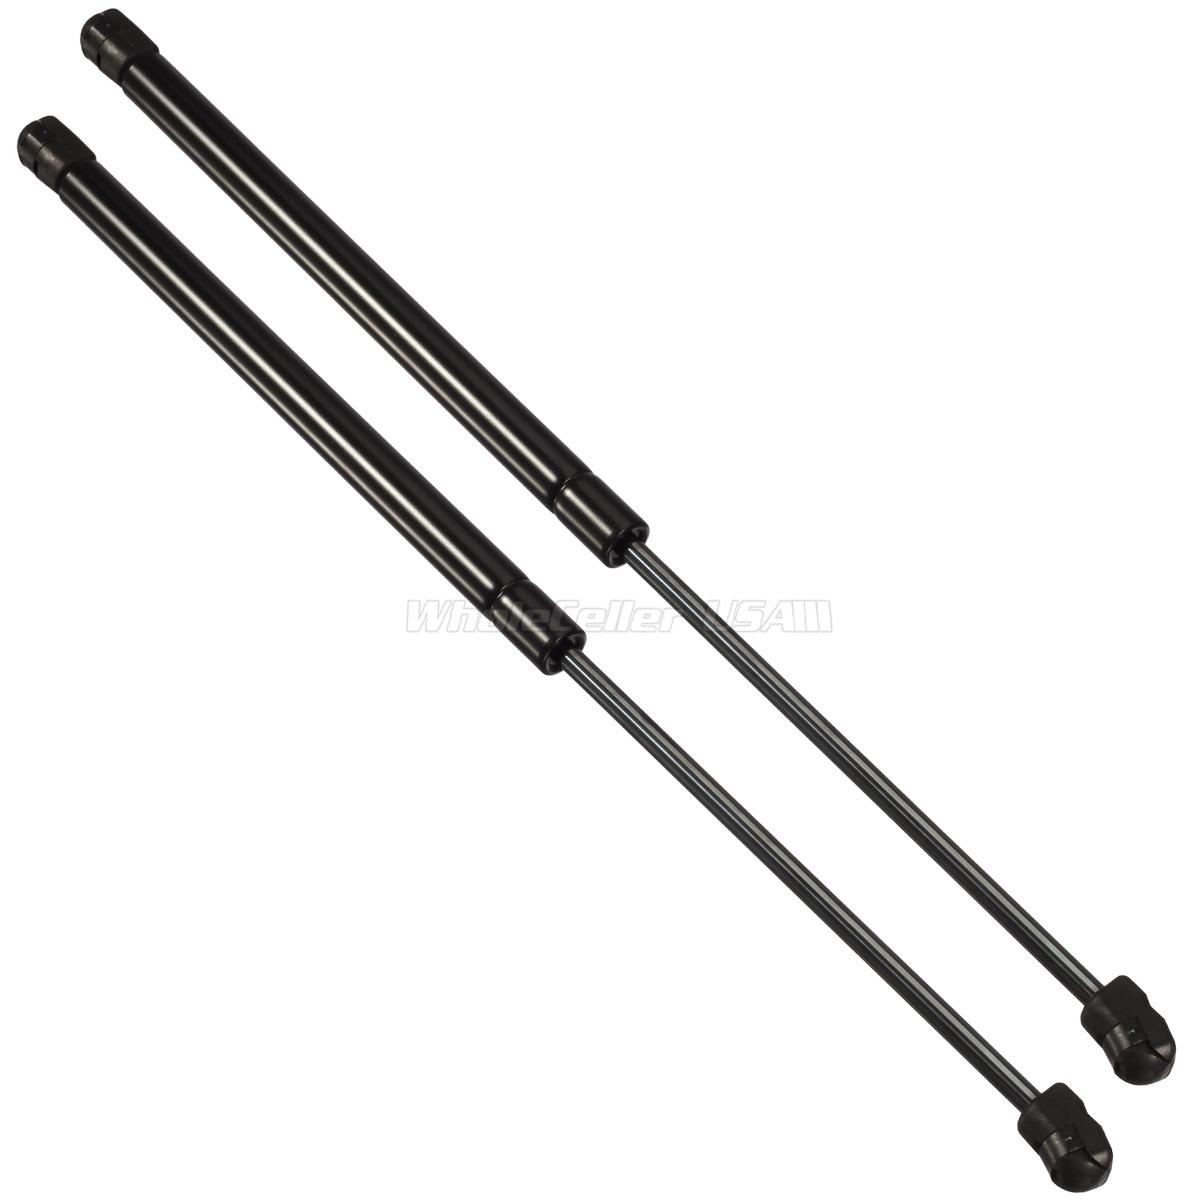 Qty (2) Rear Hatch Gas Charged Lift Support Struts For